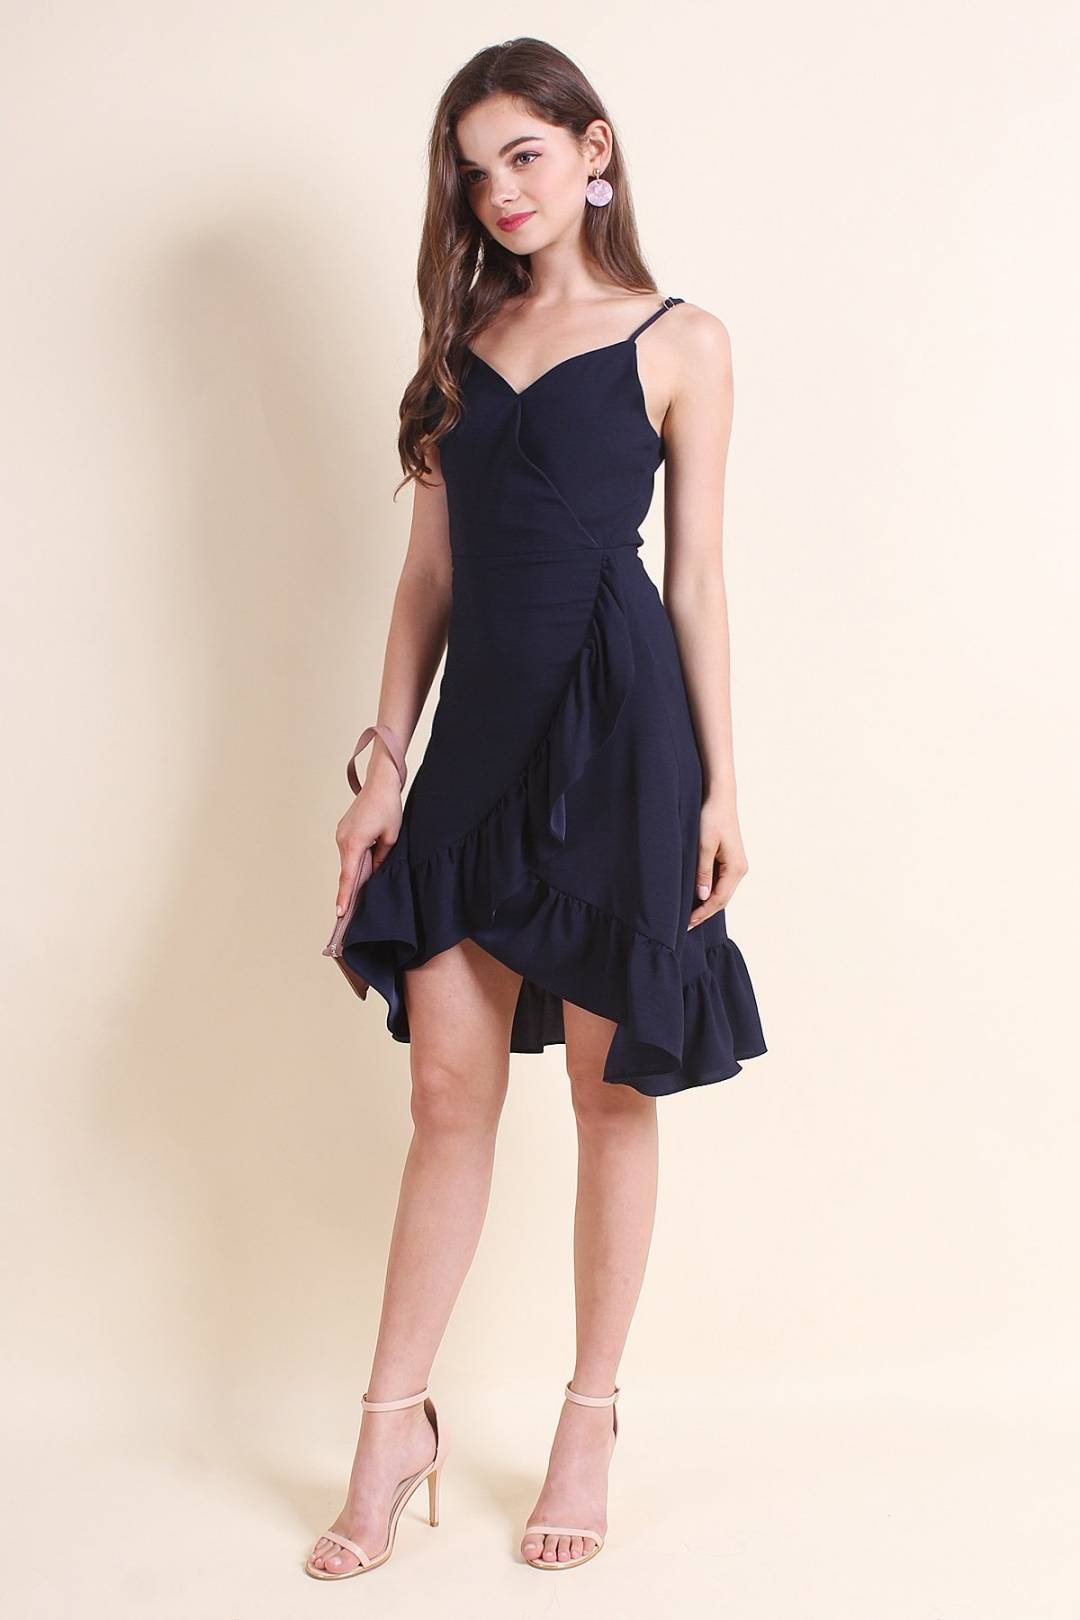 MADEBYNM DANIELLE RUFFLES OVERLAP DRESS IN SOLID NAVY [XS/S/M/L]